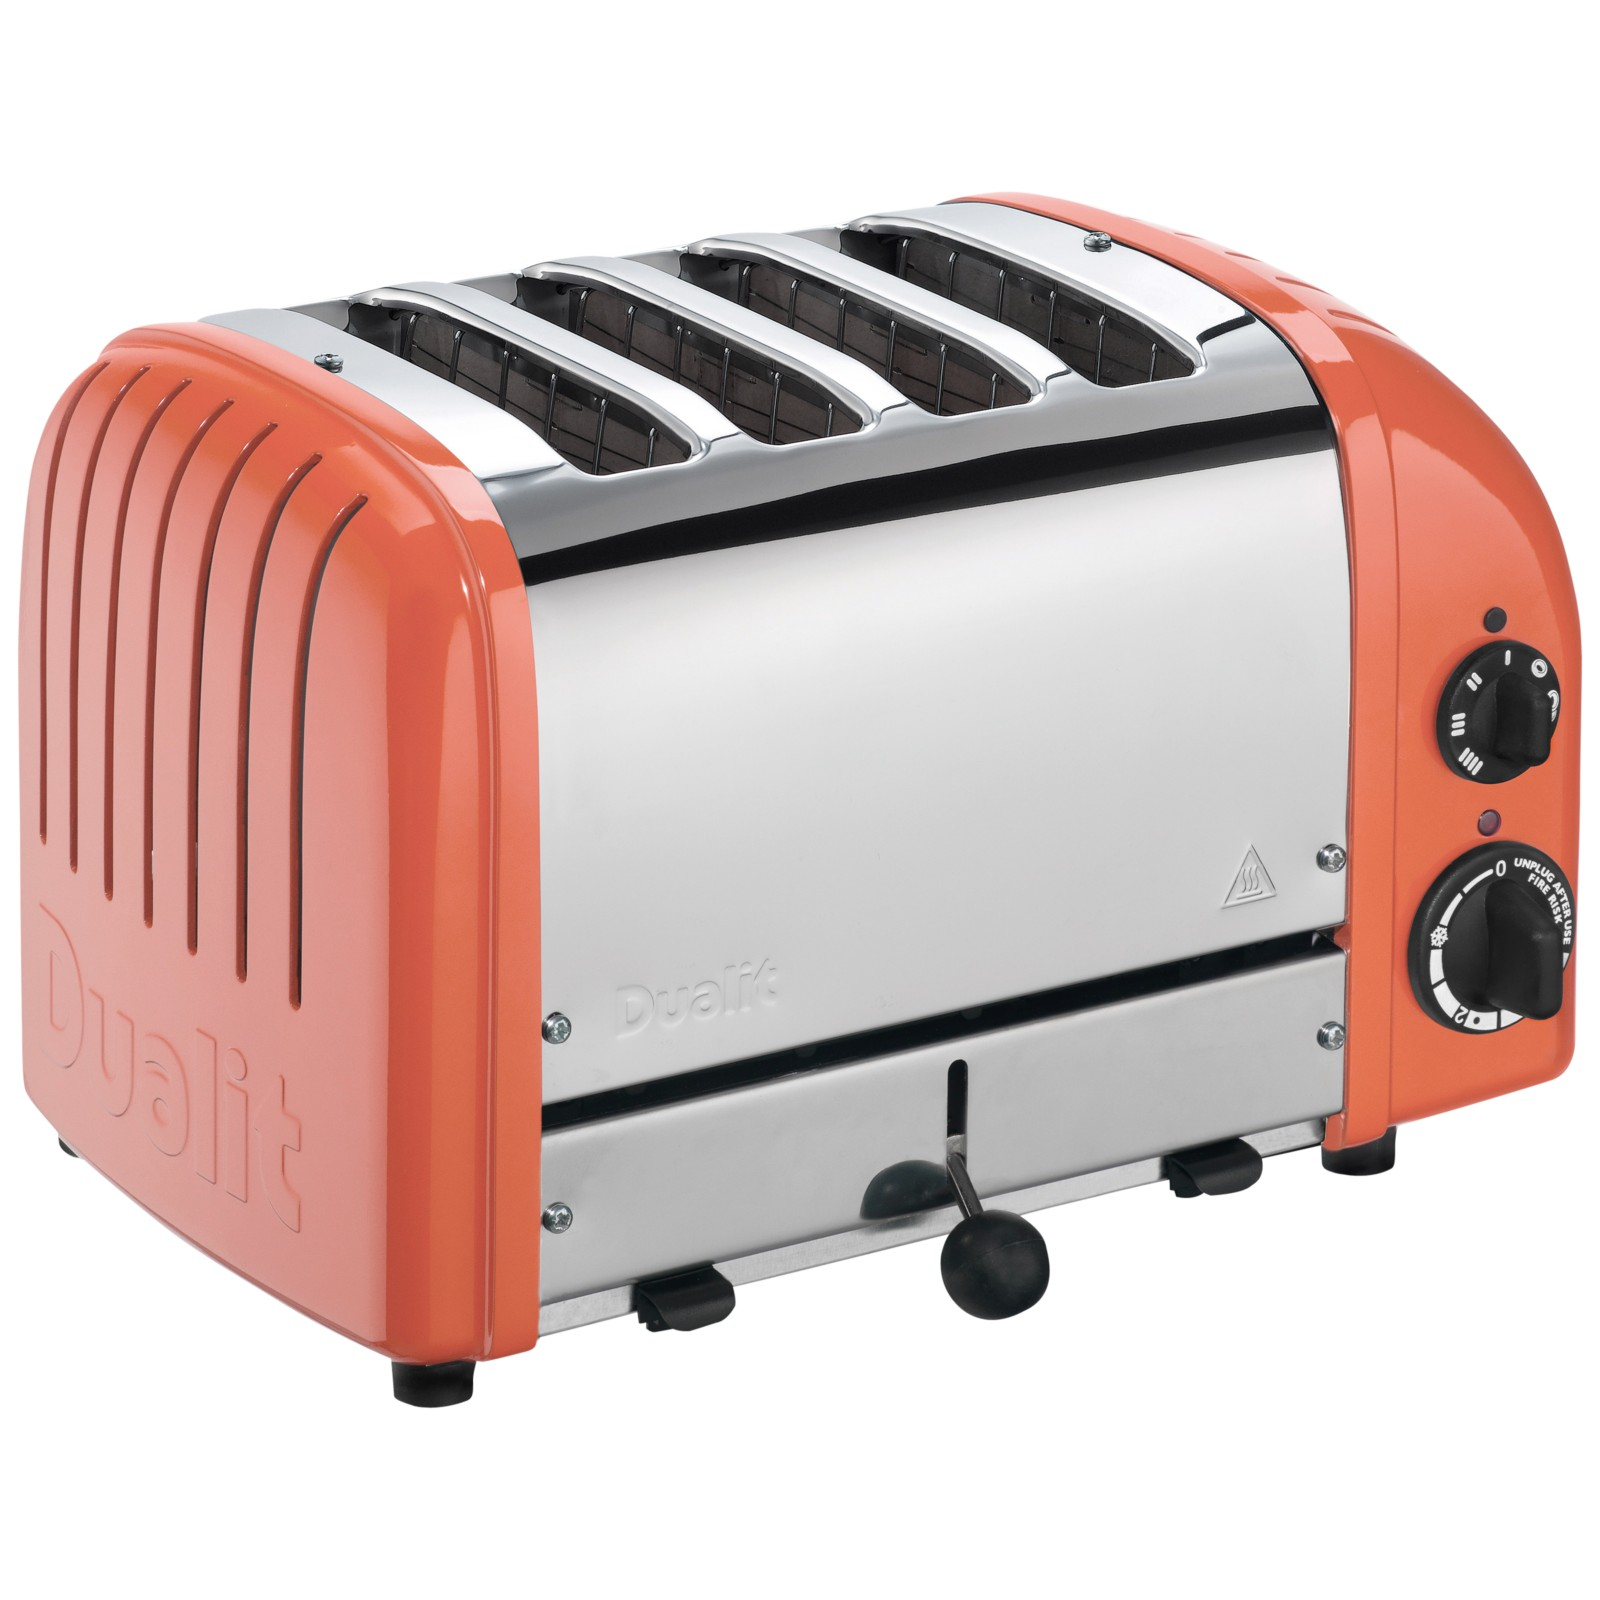 Dualit Made to Order Classic 4-Slice Toaster Stainless Steel/Salmon Pink Gloss